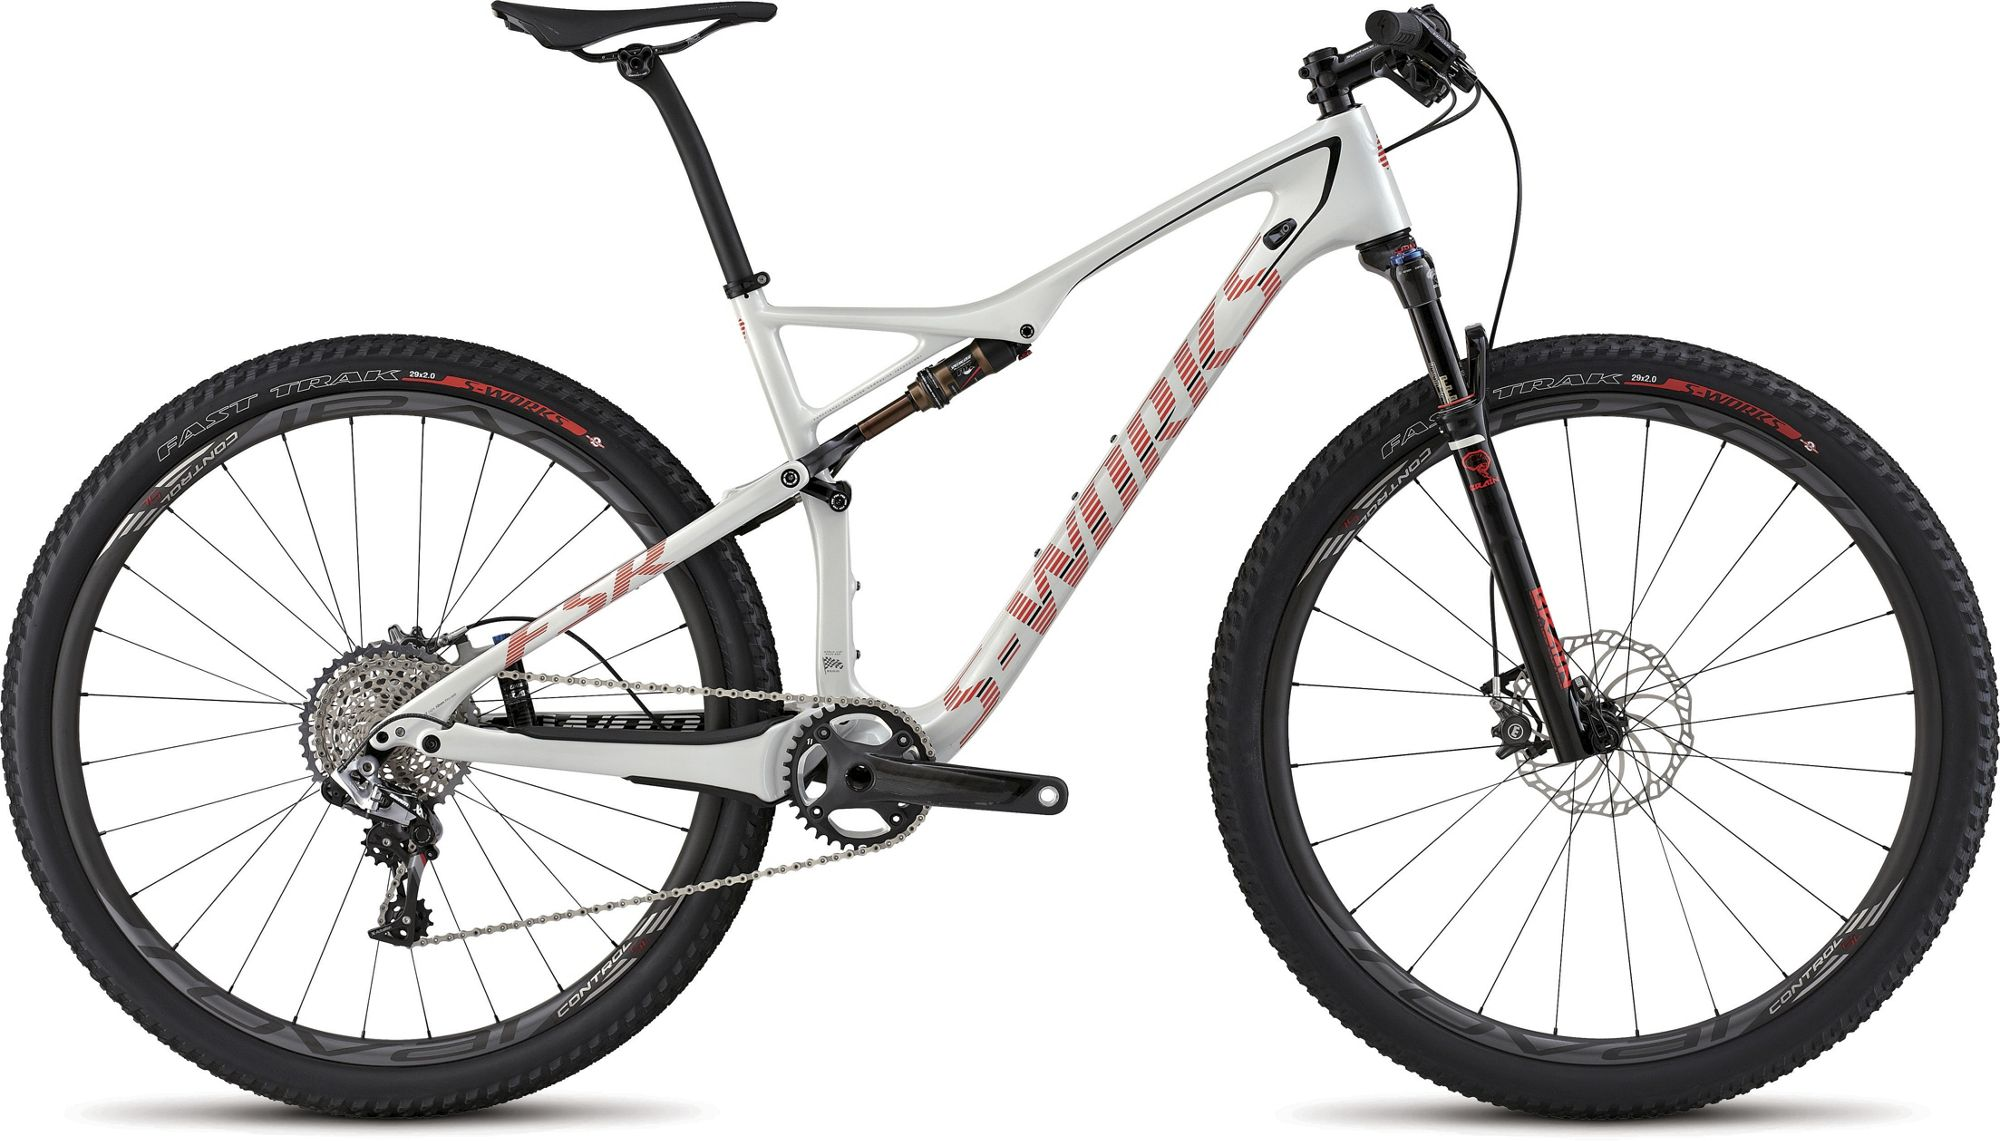 618a95ec7 Specialized S-WORKS EPIC WORLD CUP 2015 review - The Bike List